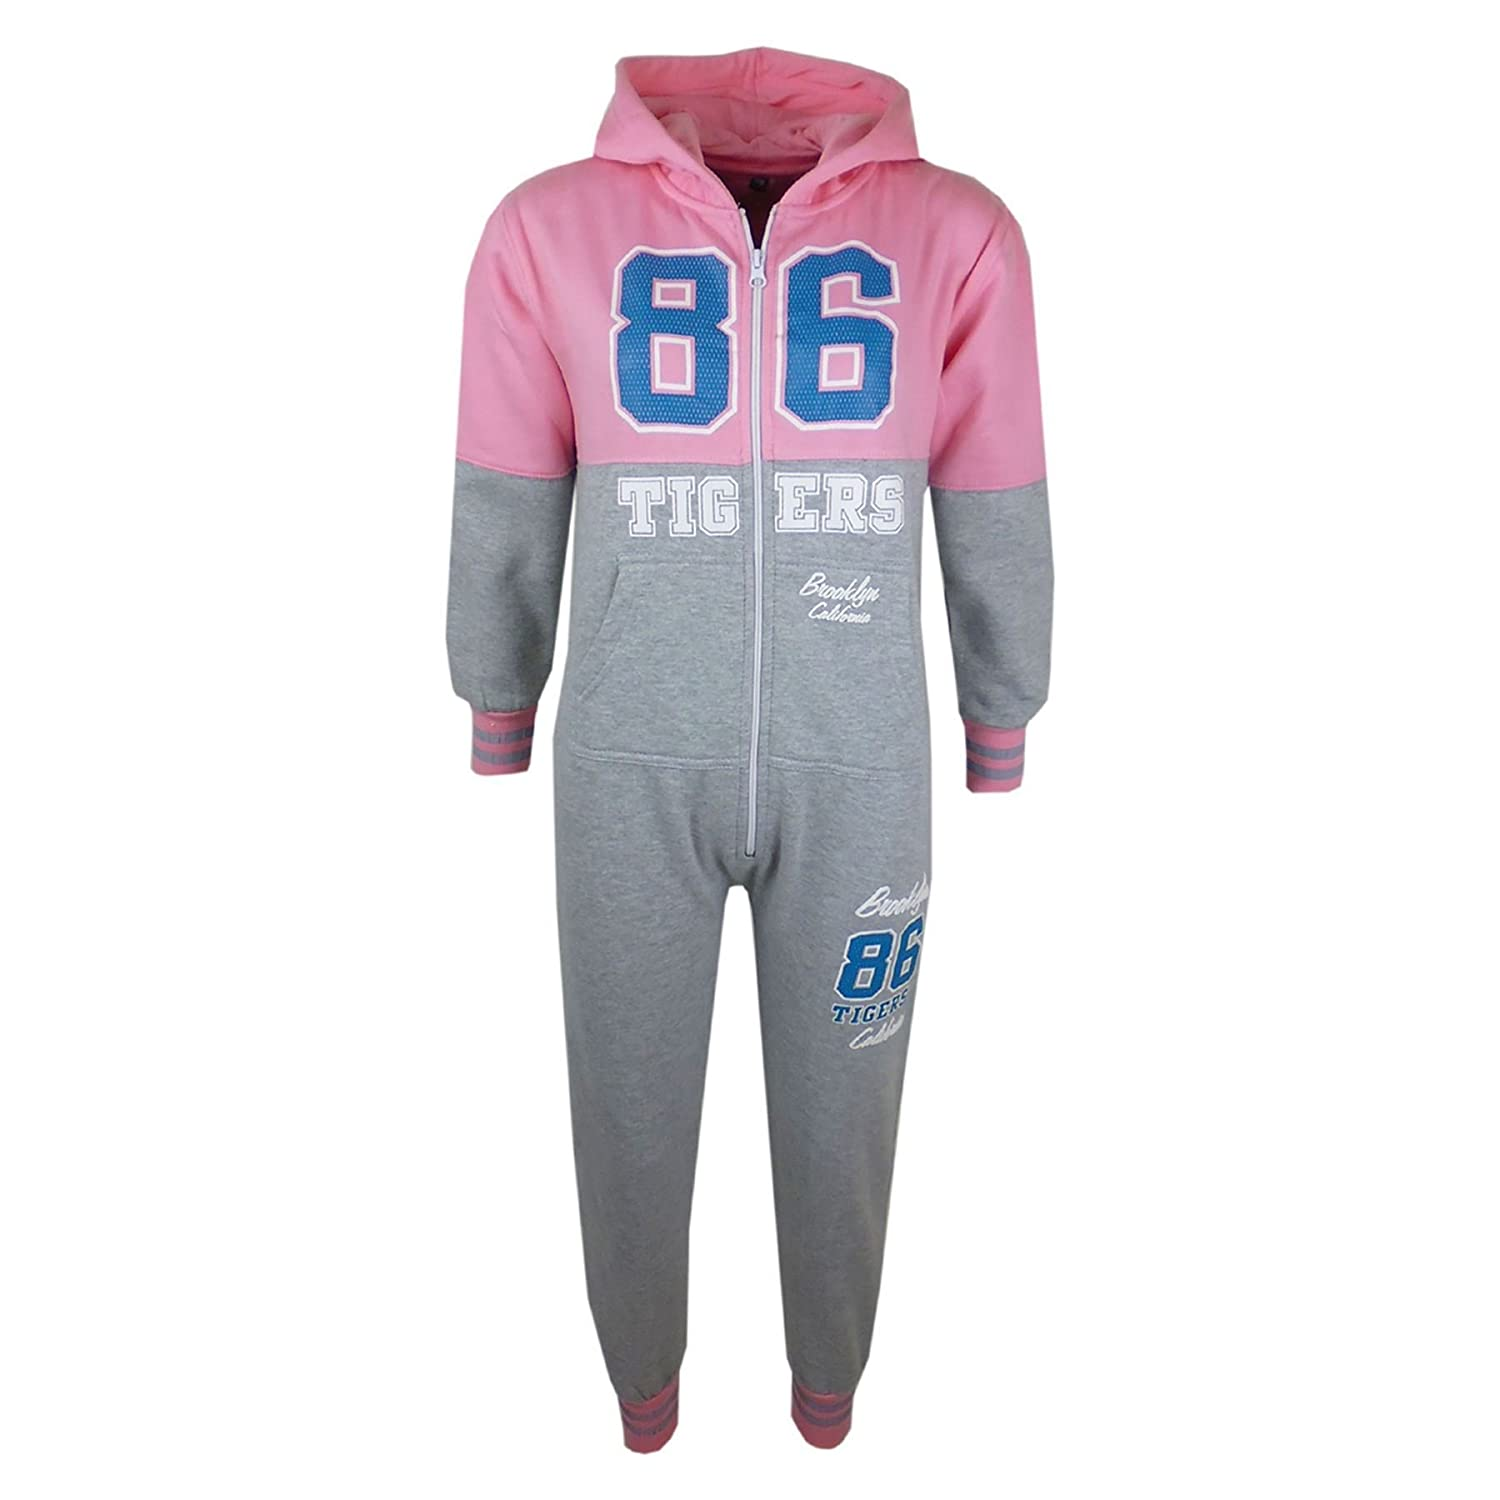 A2Z 4 Kids® Kids Girls Boys Onesie Tigers 86 Brooklyn California Hooded All in One Jumpsuit PJ's Age 7-13 Years